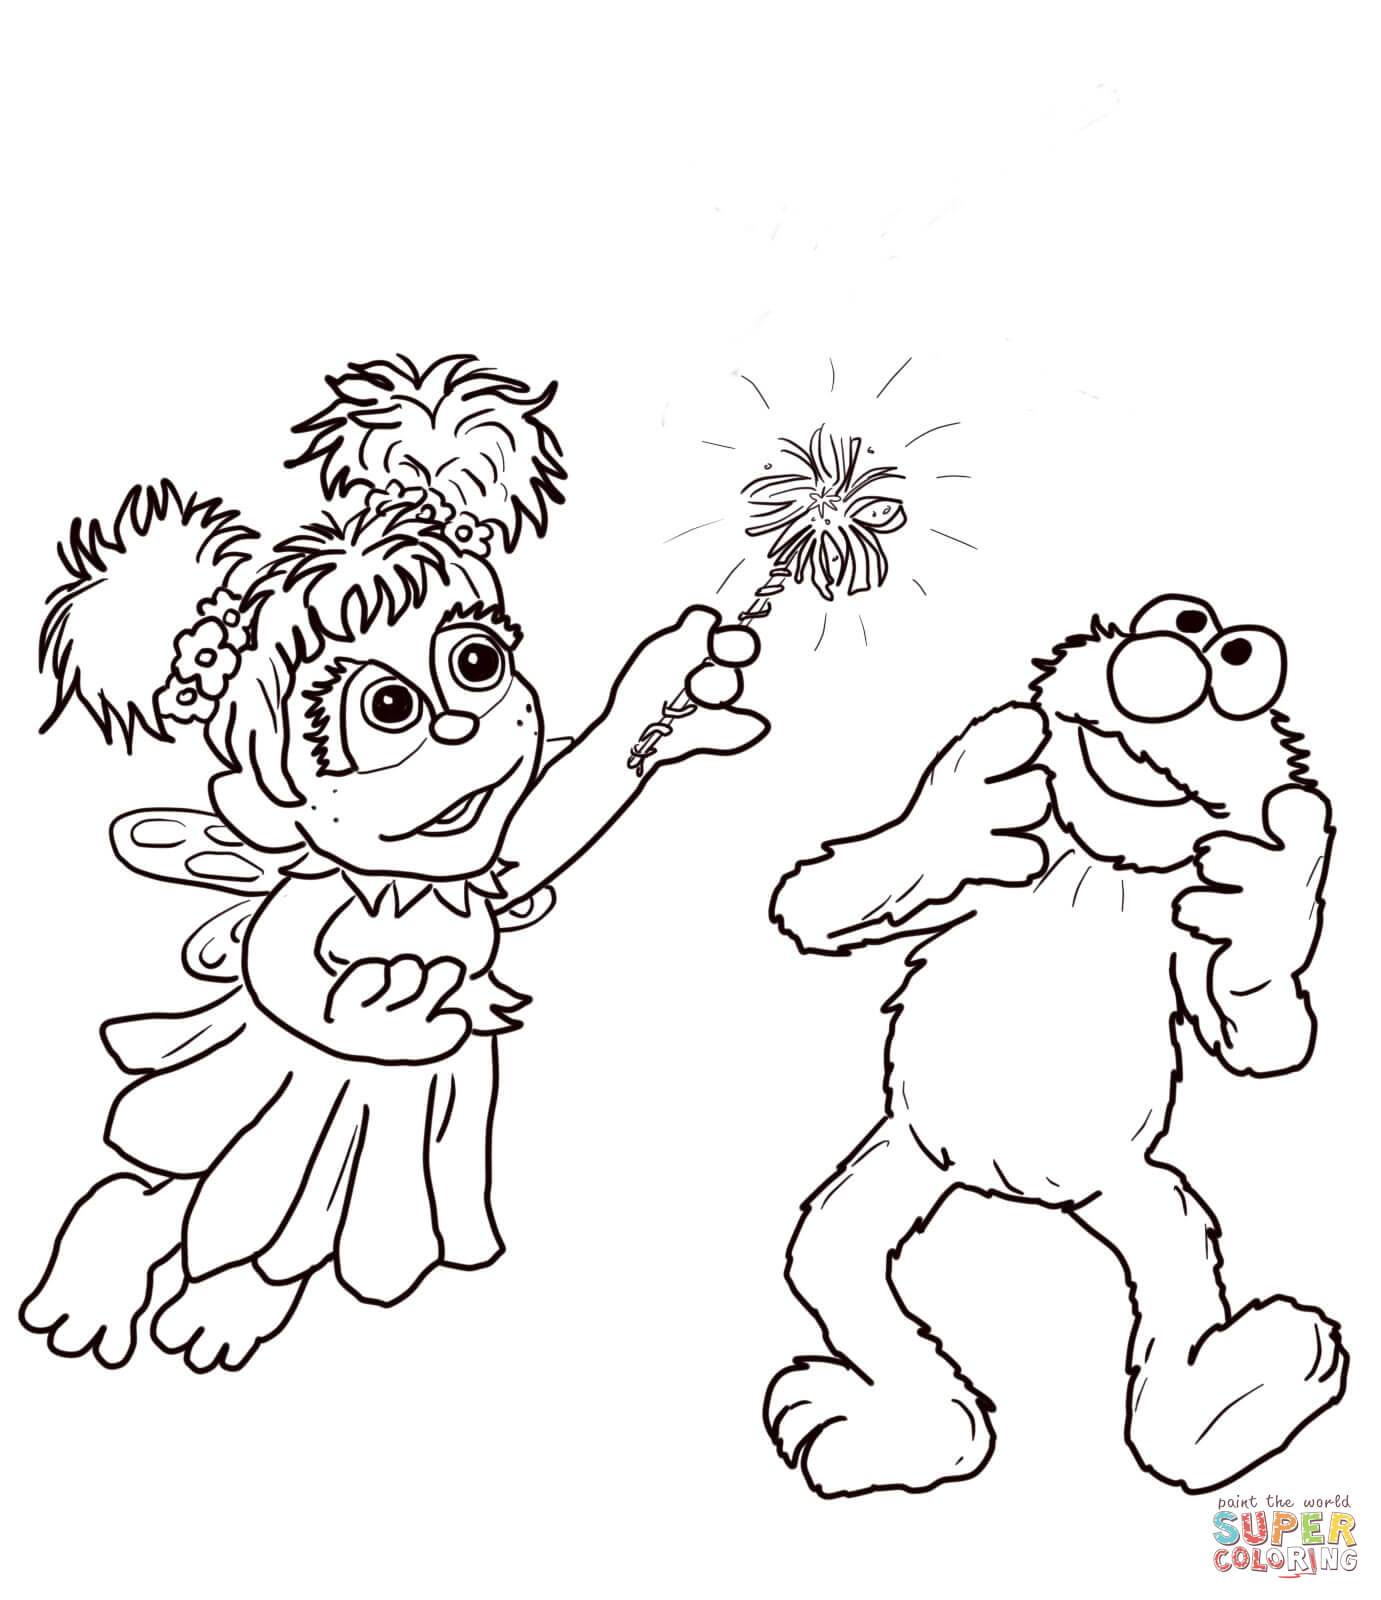 Abby Cadabby And Elmo Coloring Page | Free Printable Coloring Pages - Elmo Color Pages Free Printable